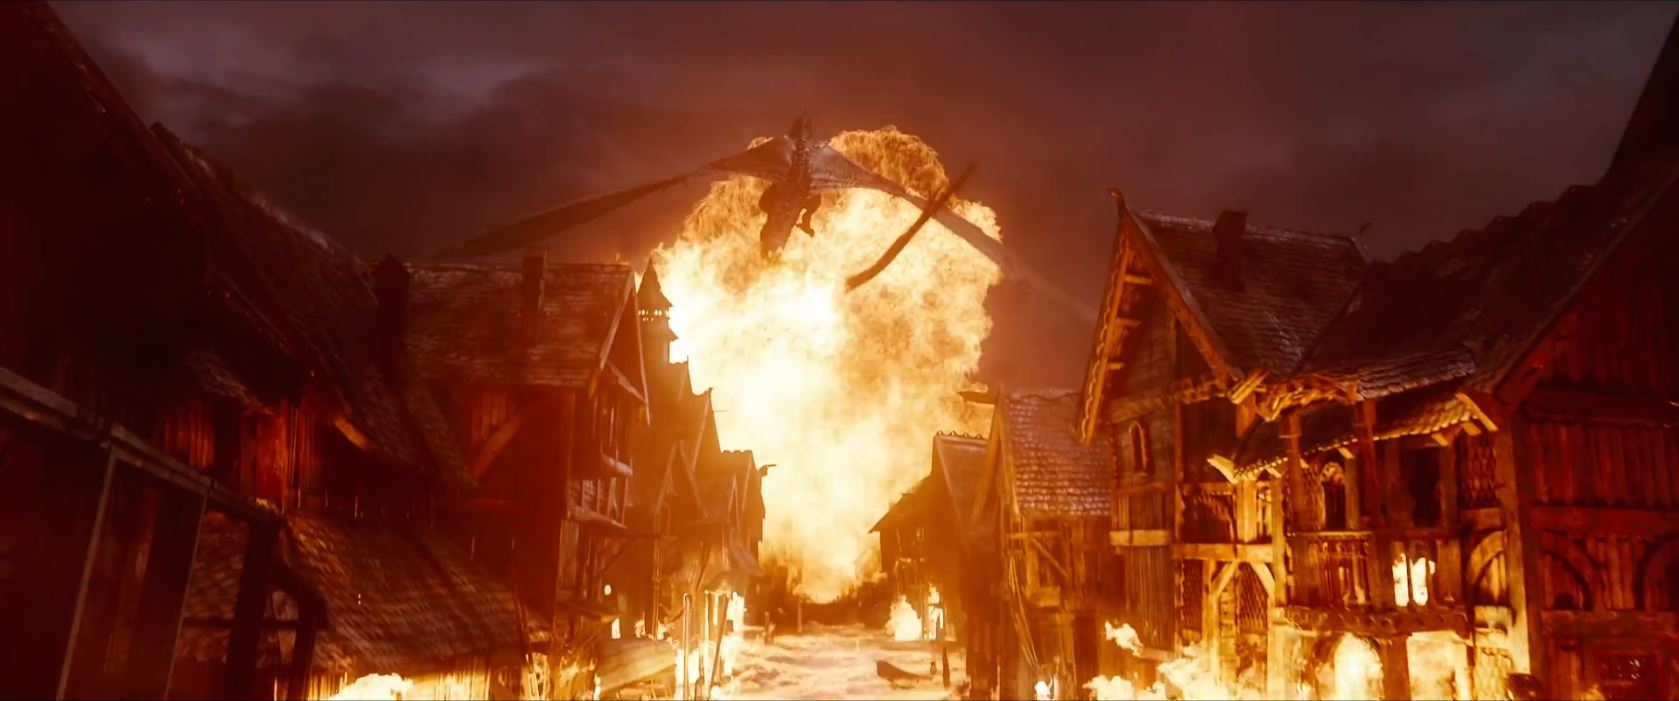 The Hobbit The Battle of the Five Armies Trailer - Smaug burns the town